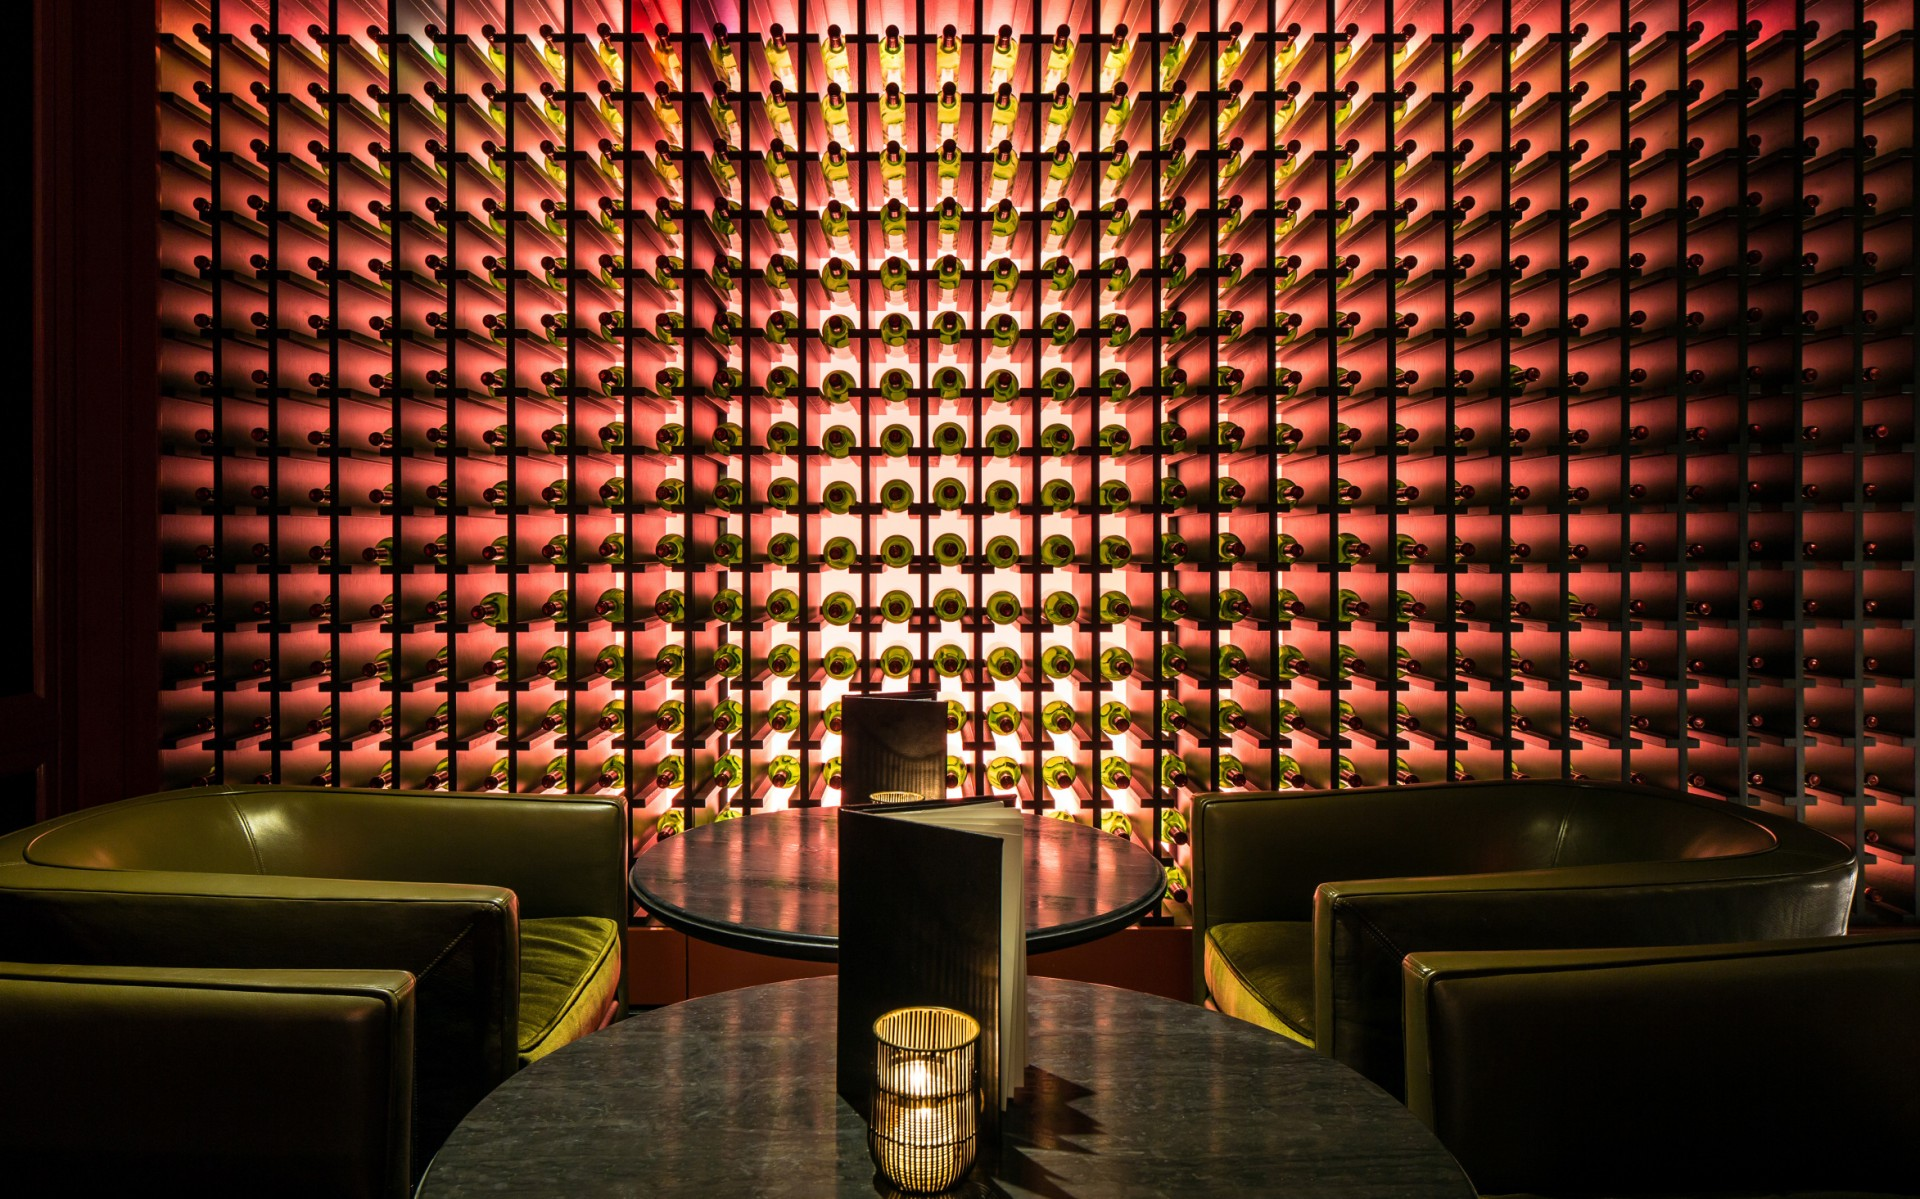 CM Kling used Lumenpulse LED luminaires to give the Trouble's Trust bar a modern ambiance.